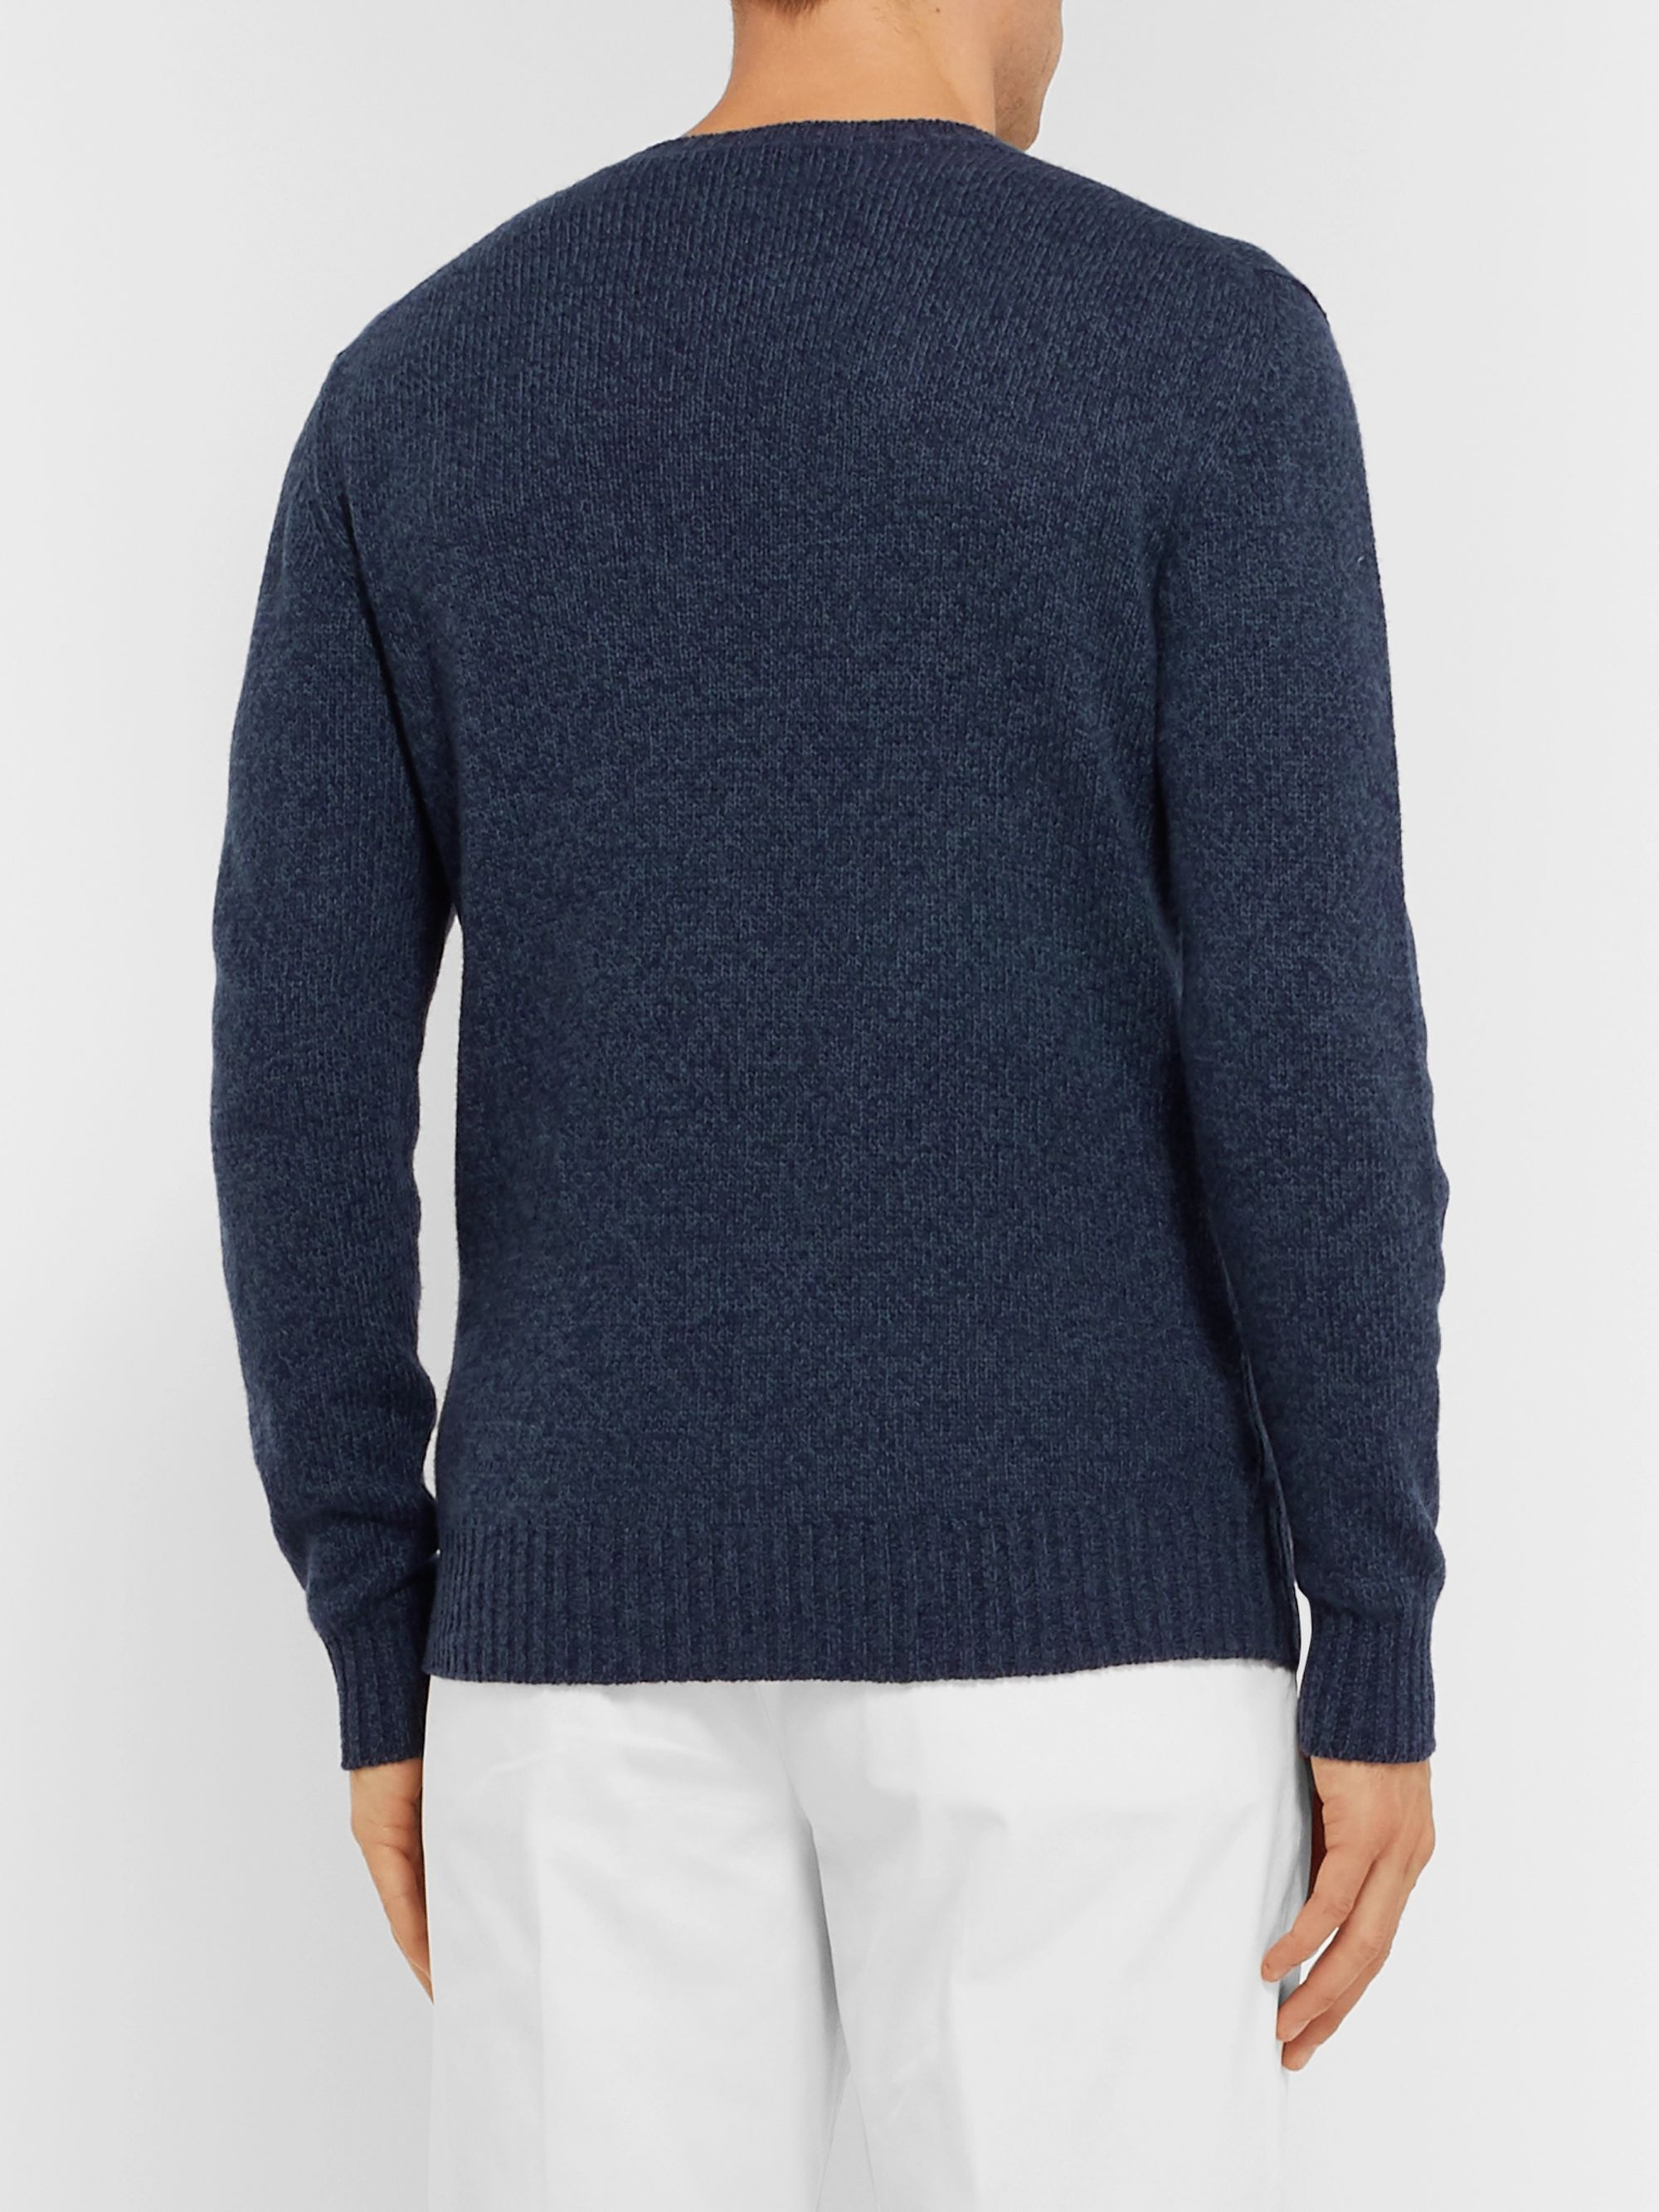 Loro Piana Slim-Fit Mélange Baby Cashmere Sweater